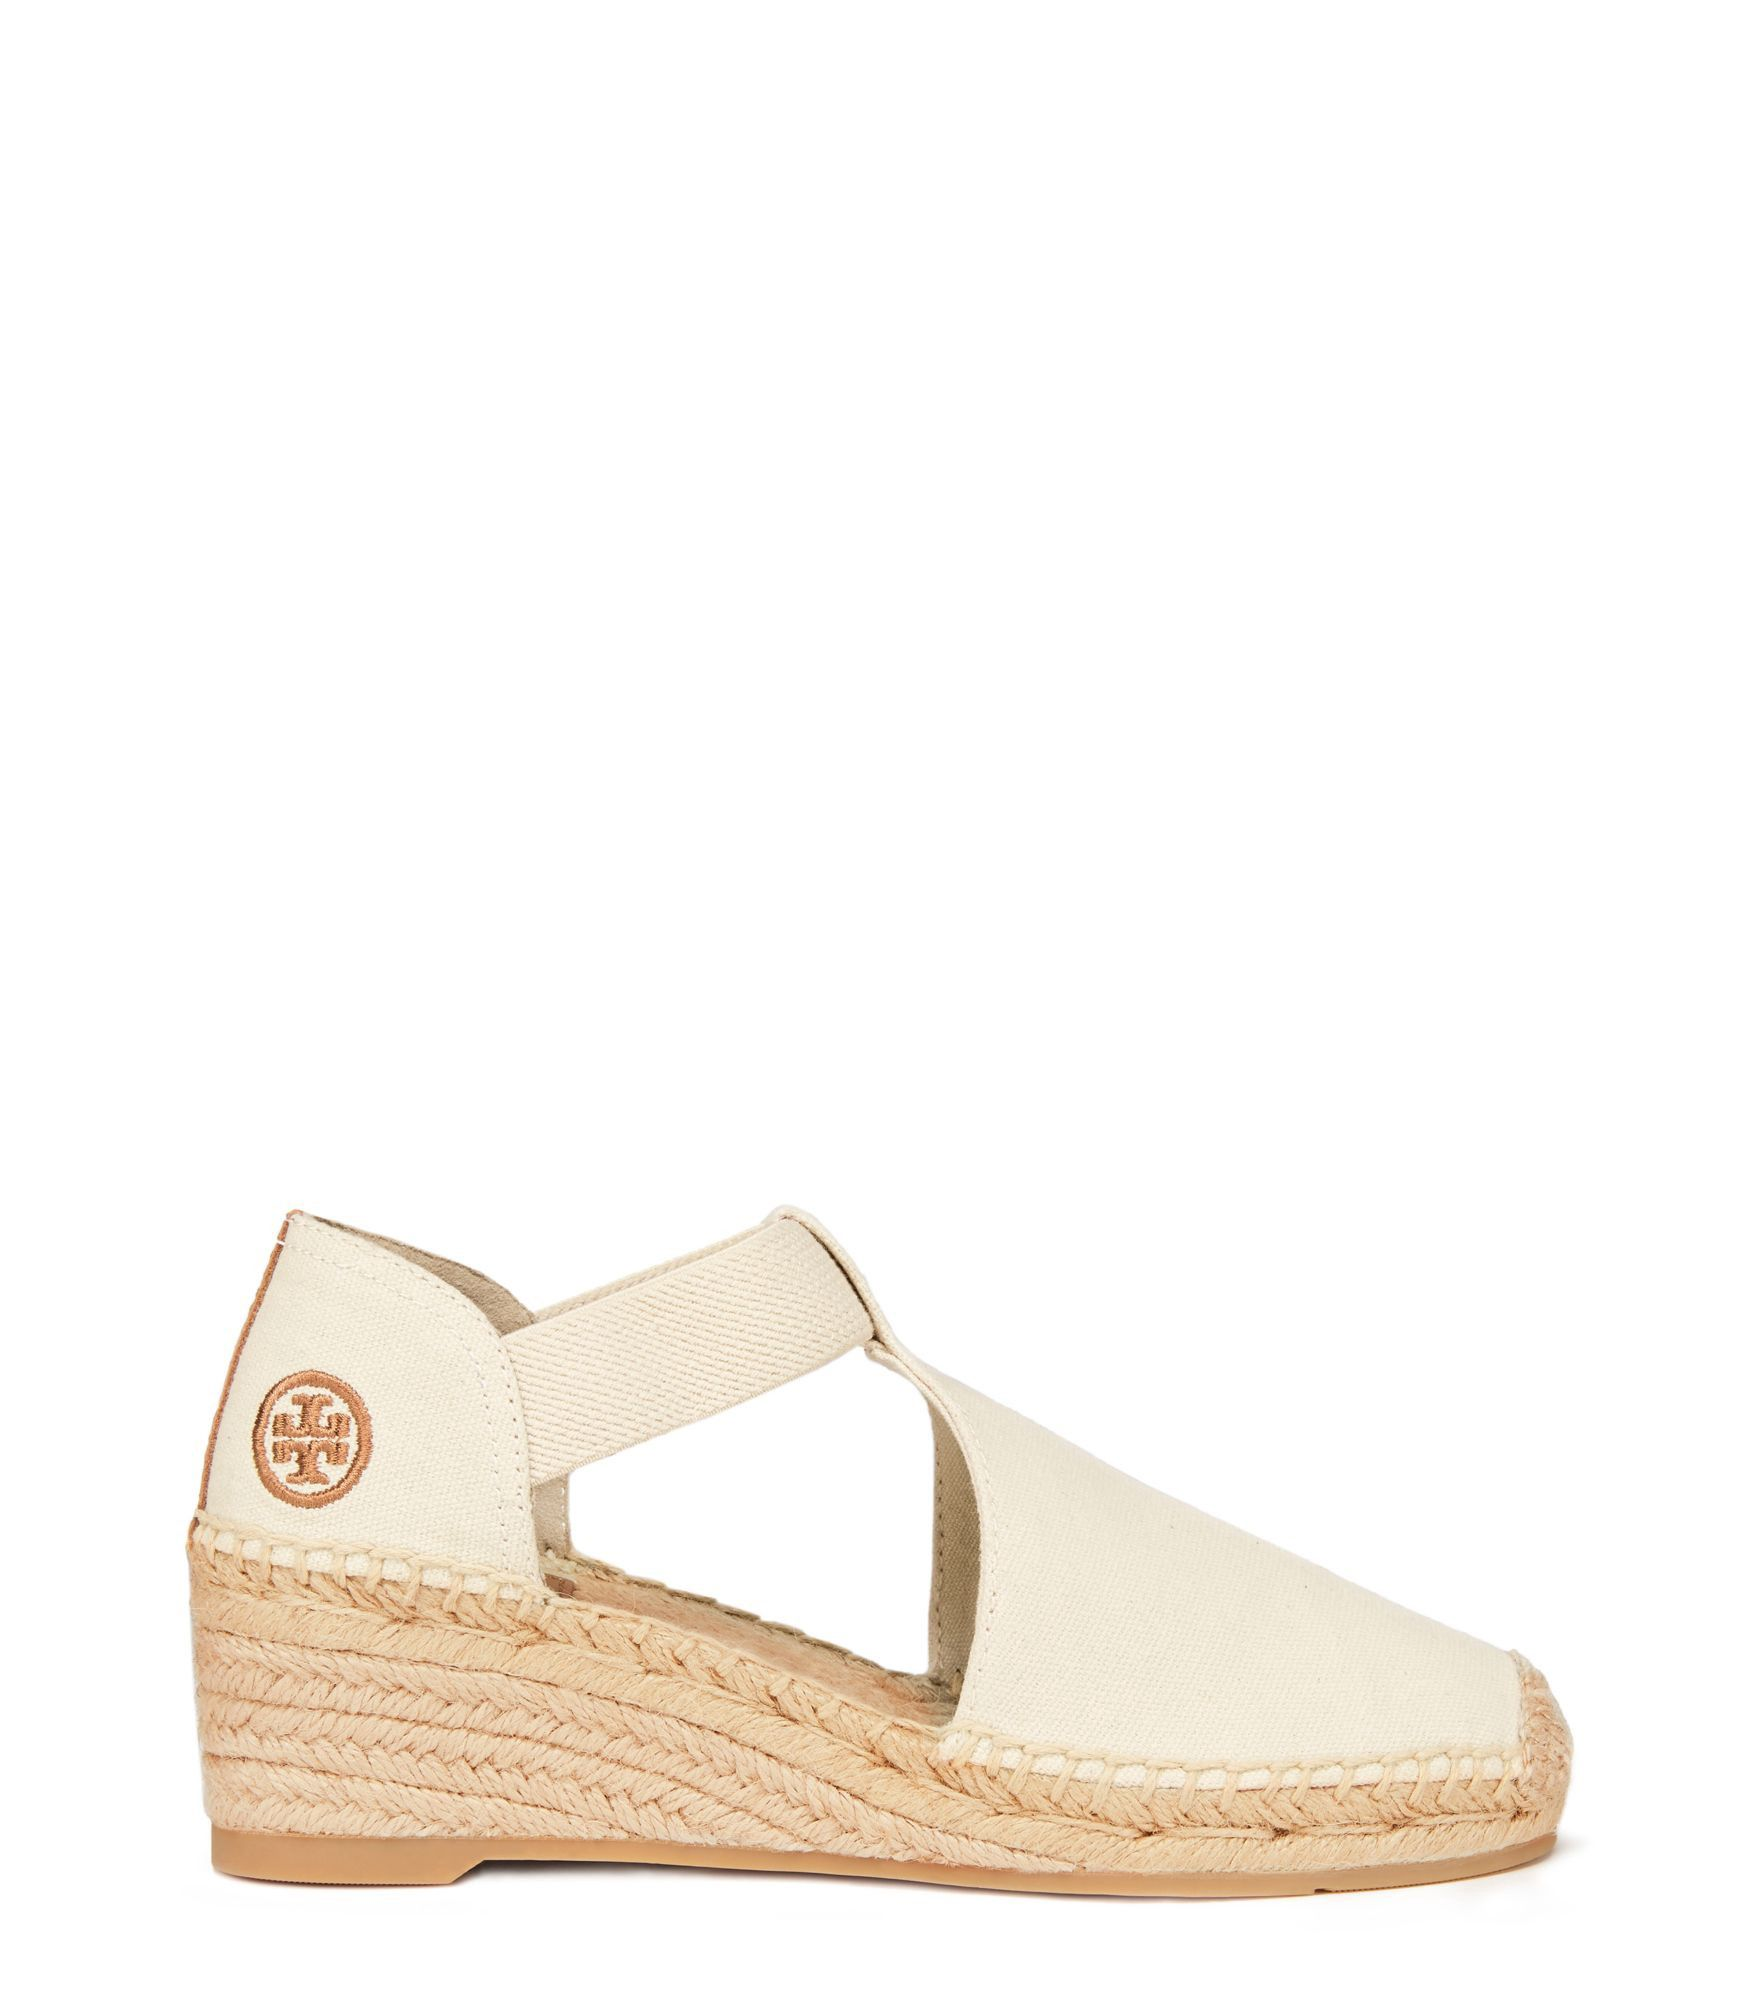 TORY BURCH CATALINA ESPADRILLE WEDGE SANDAL. #toryburch #shoes #all.  Alpargata ...